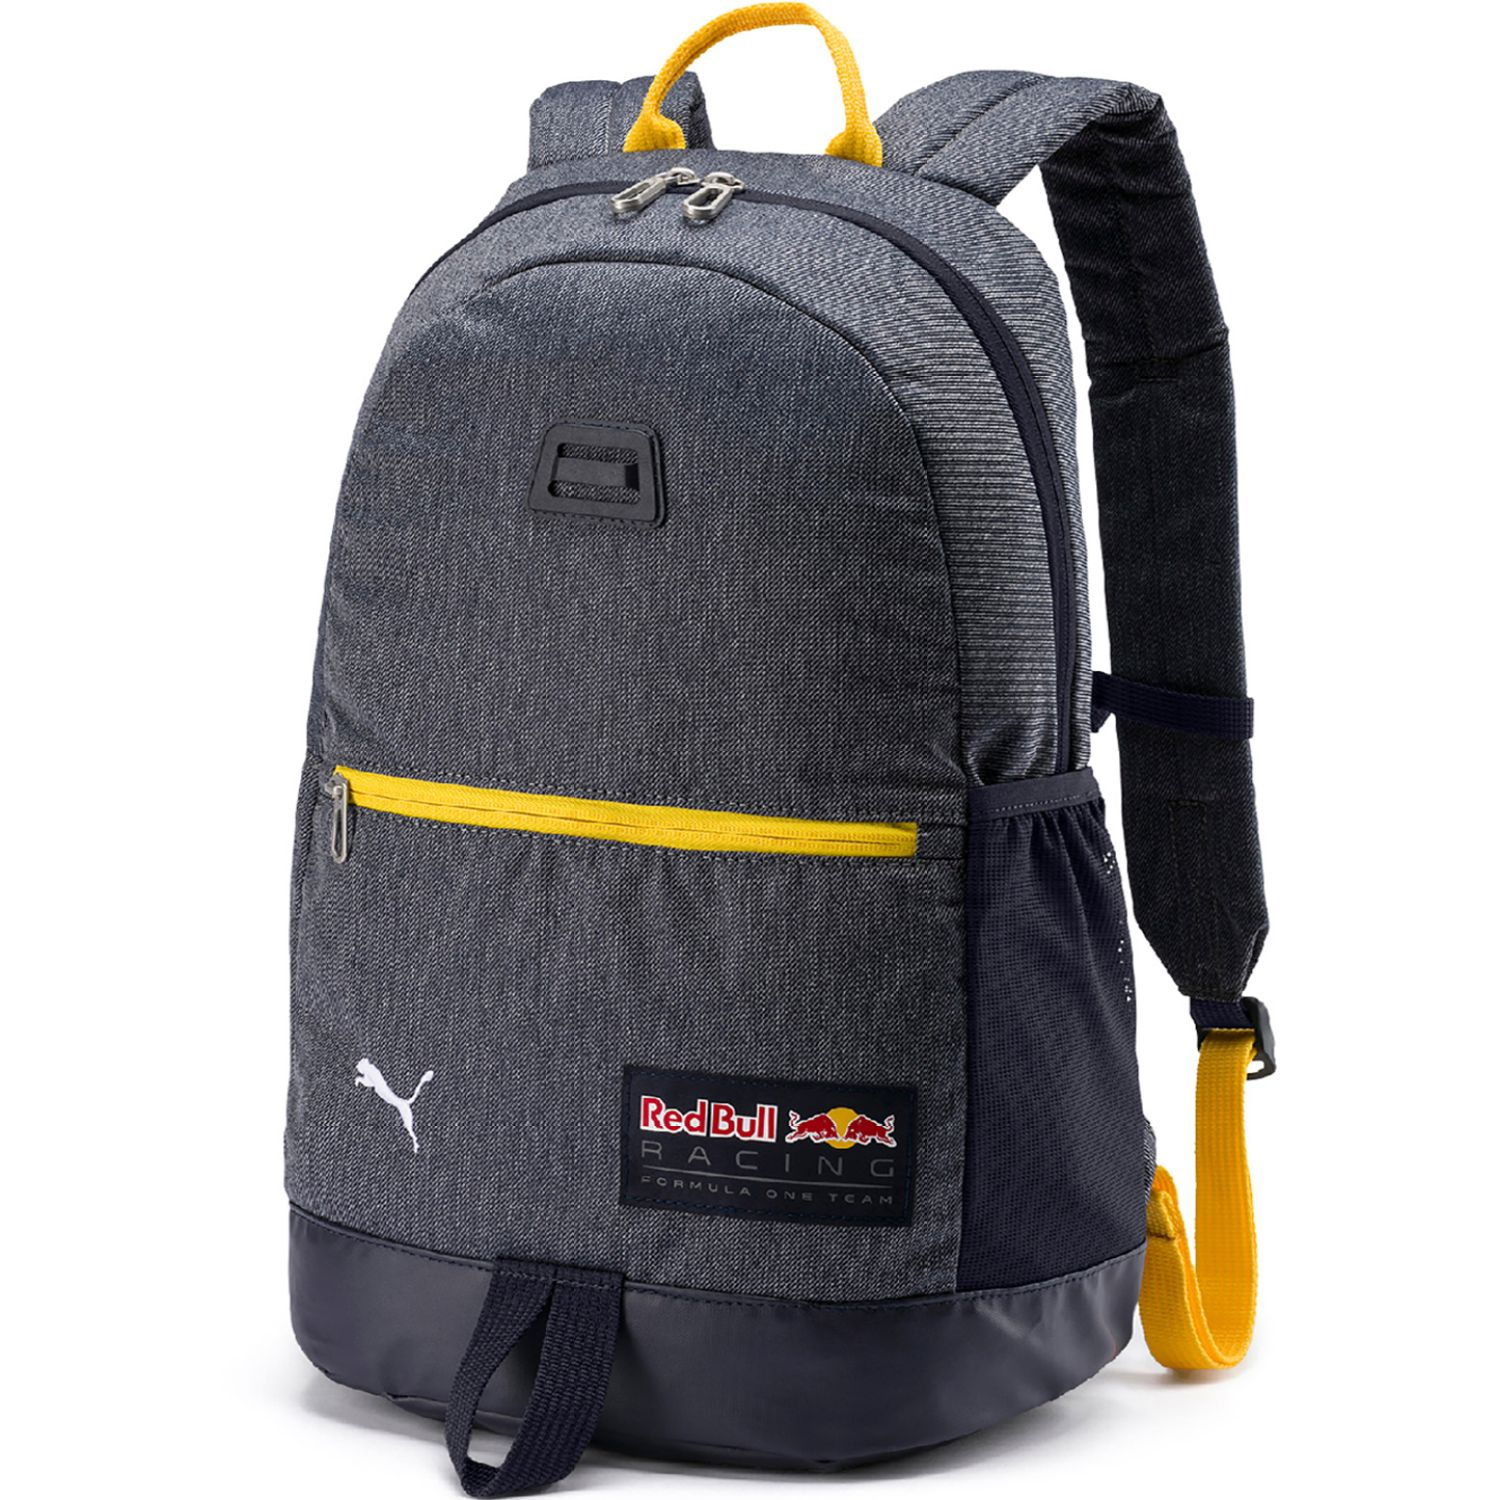 Puma rbr lifestyle backpack Azul Mochilas Multipropósitos